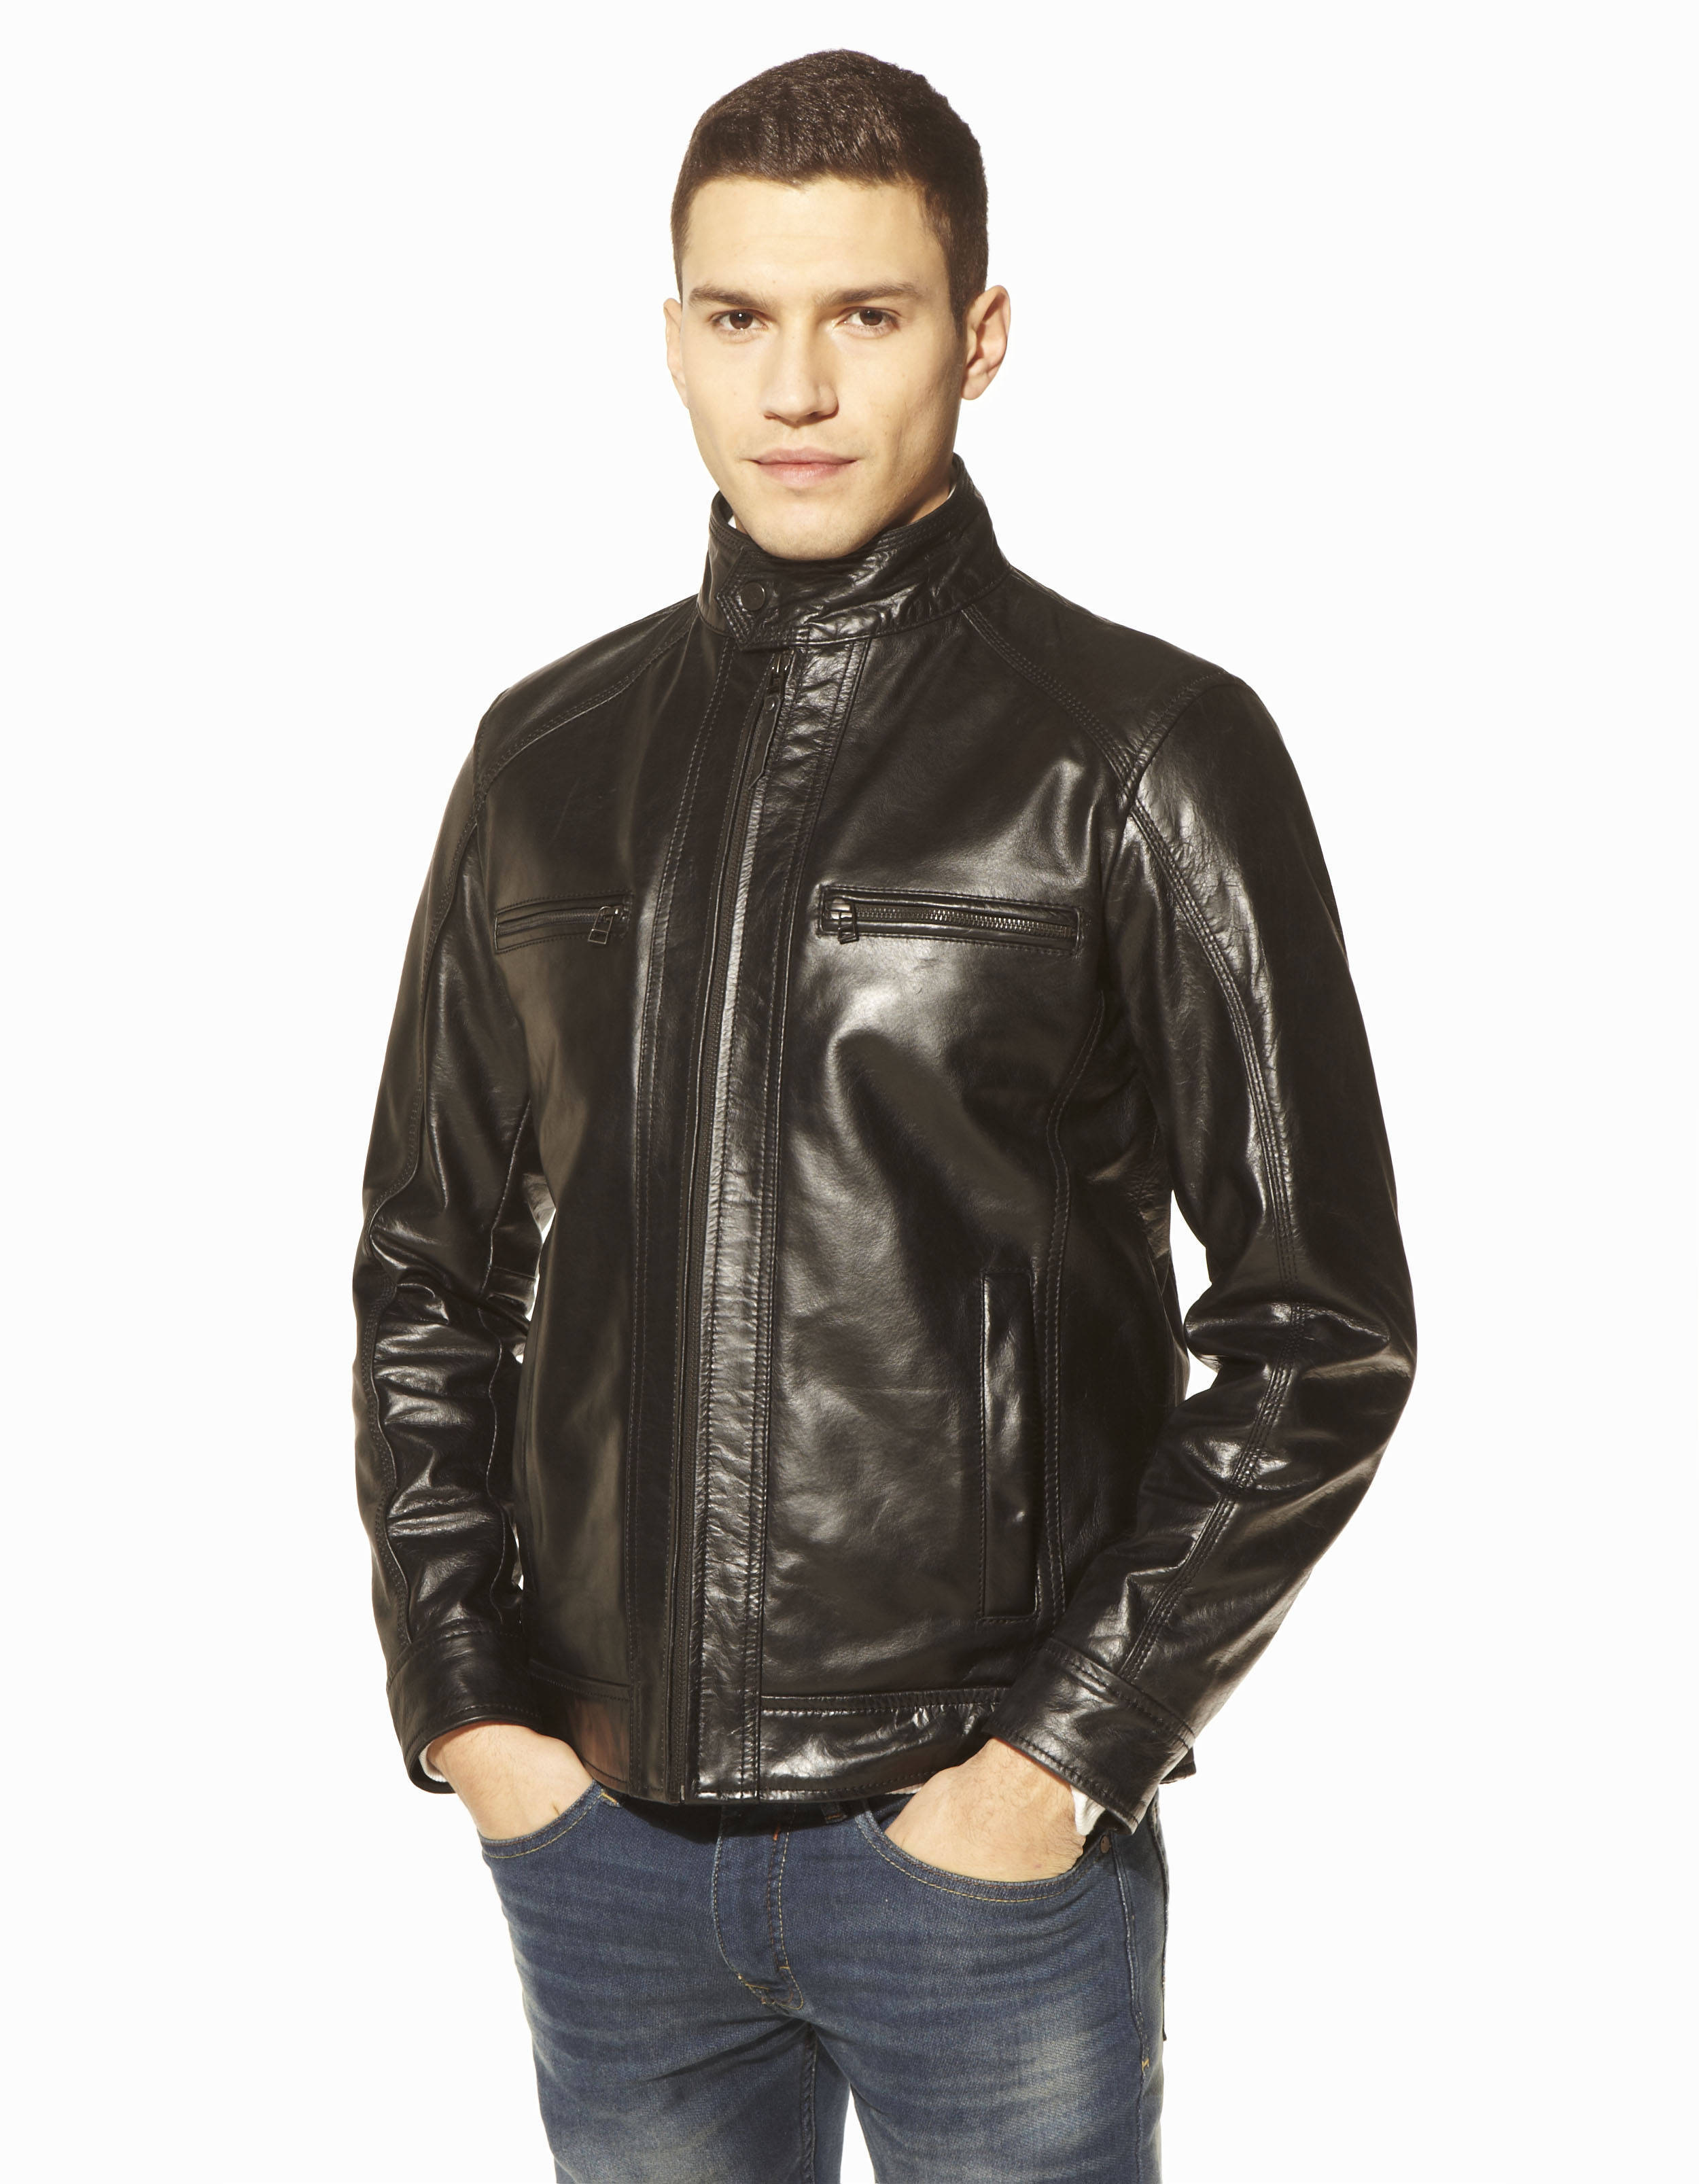 blouson esprit motard en cuir bumoto celio france. Black Bedroom Furniture Sets. Home Design Ideas